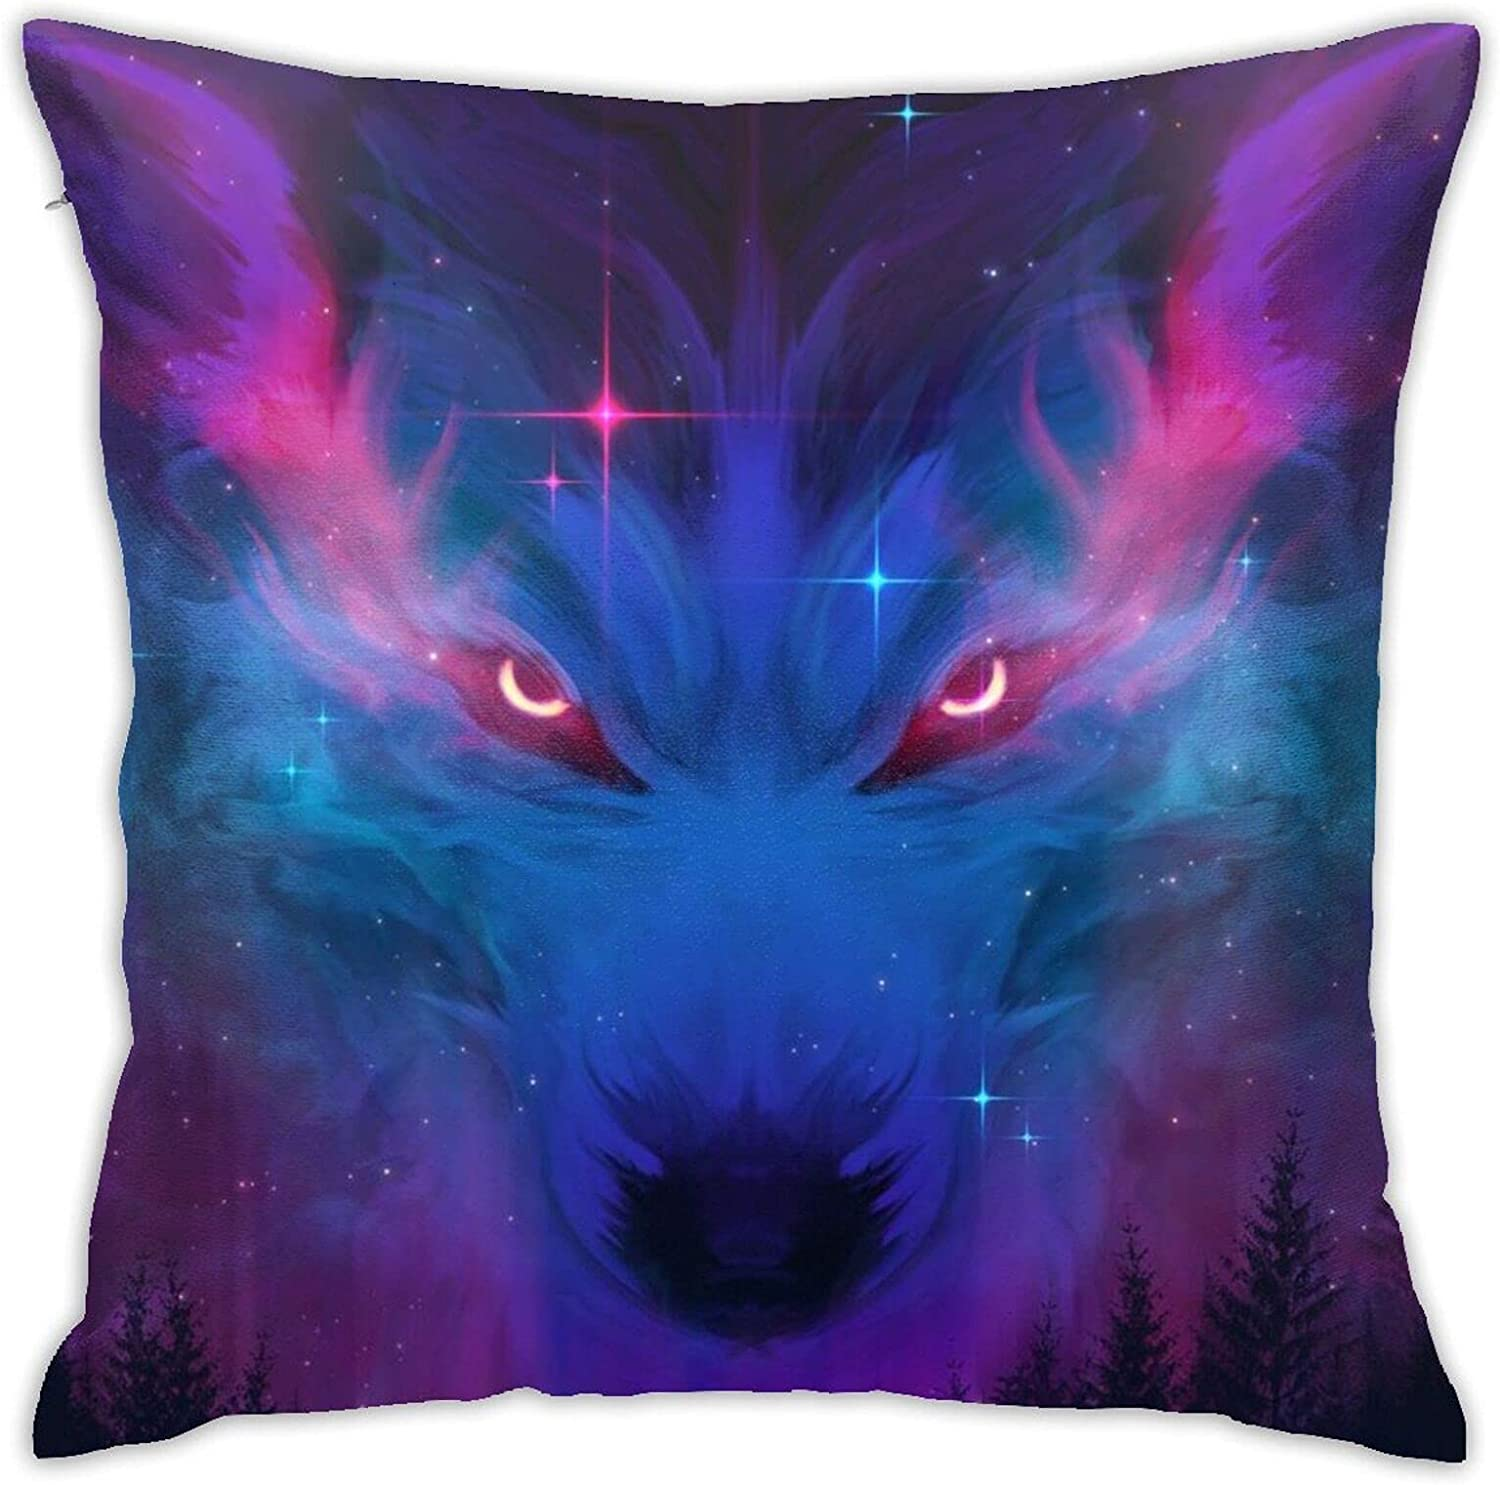 Star Cloud Wolf Factory outlet 18 X Inches Cute Design and Indefinitely Couch Pillows Bed